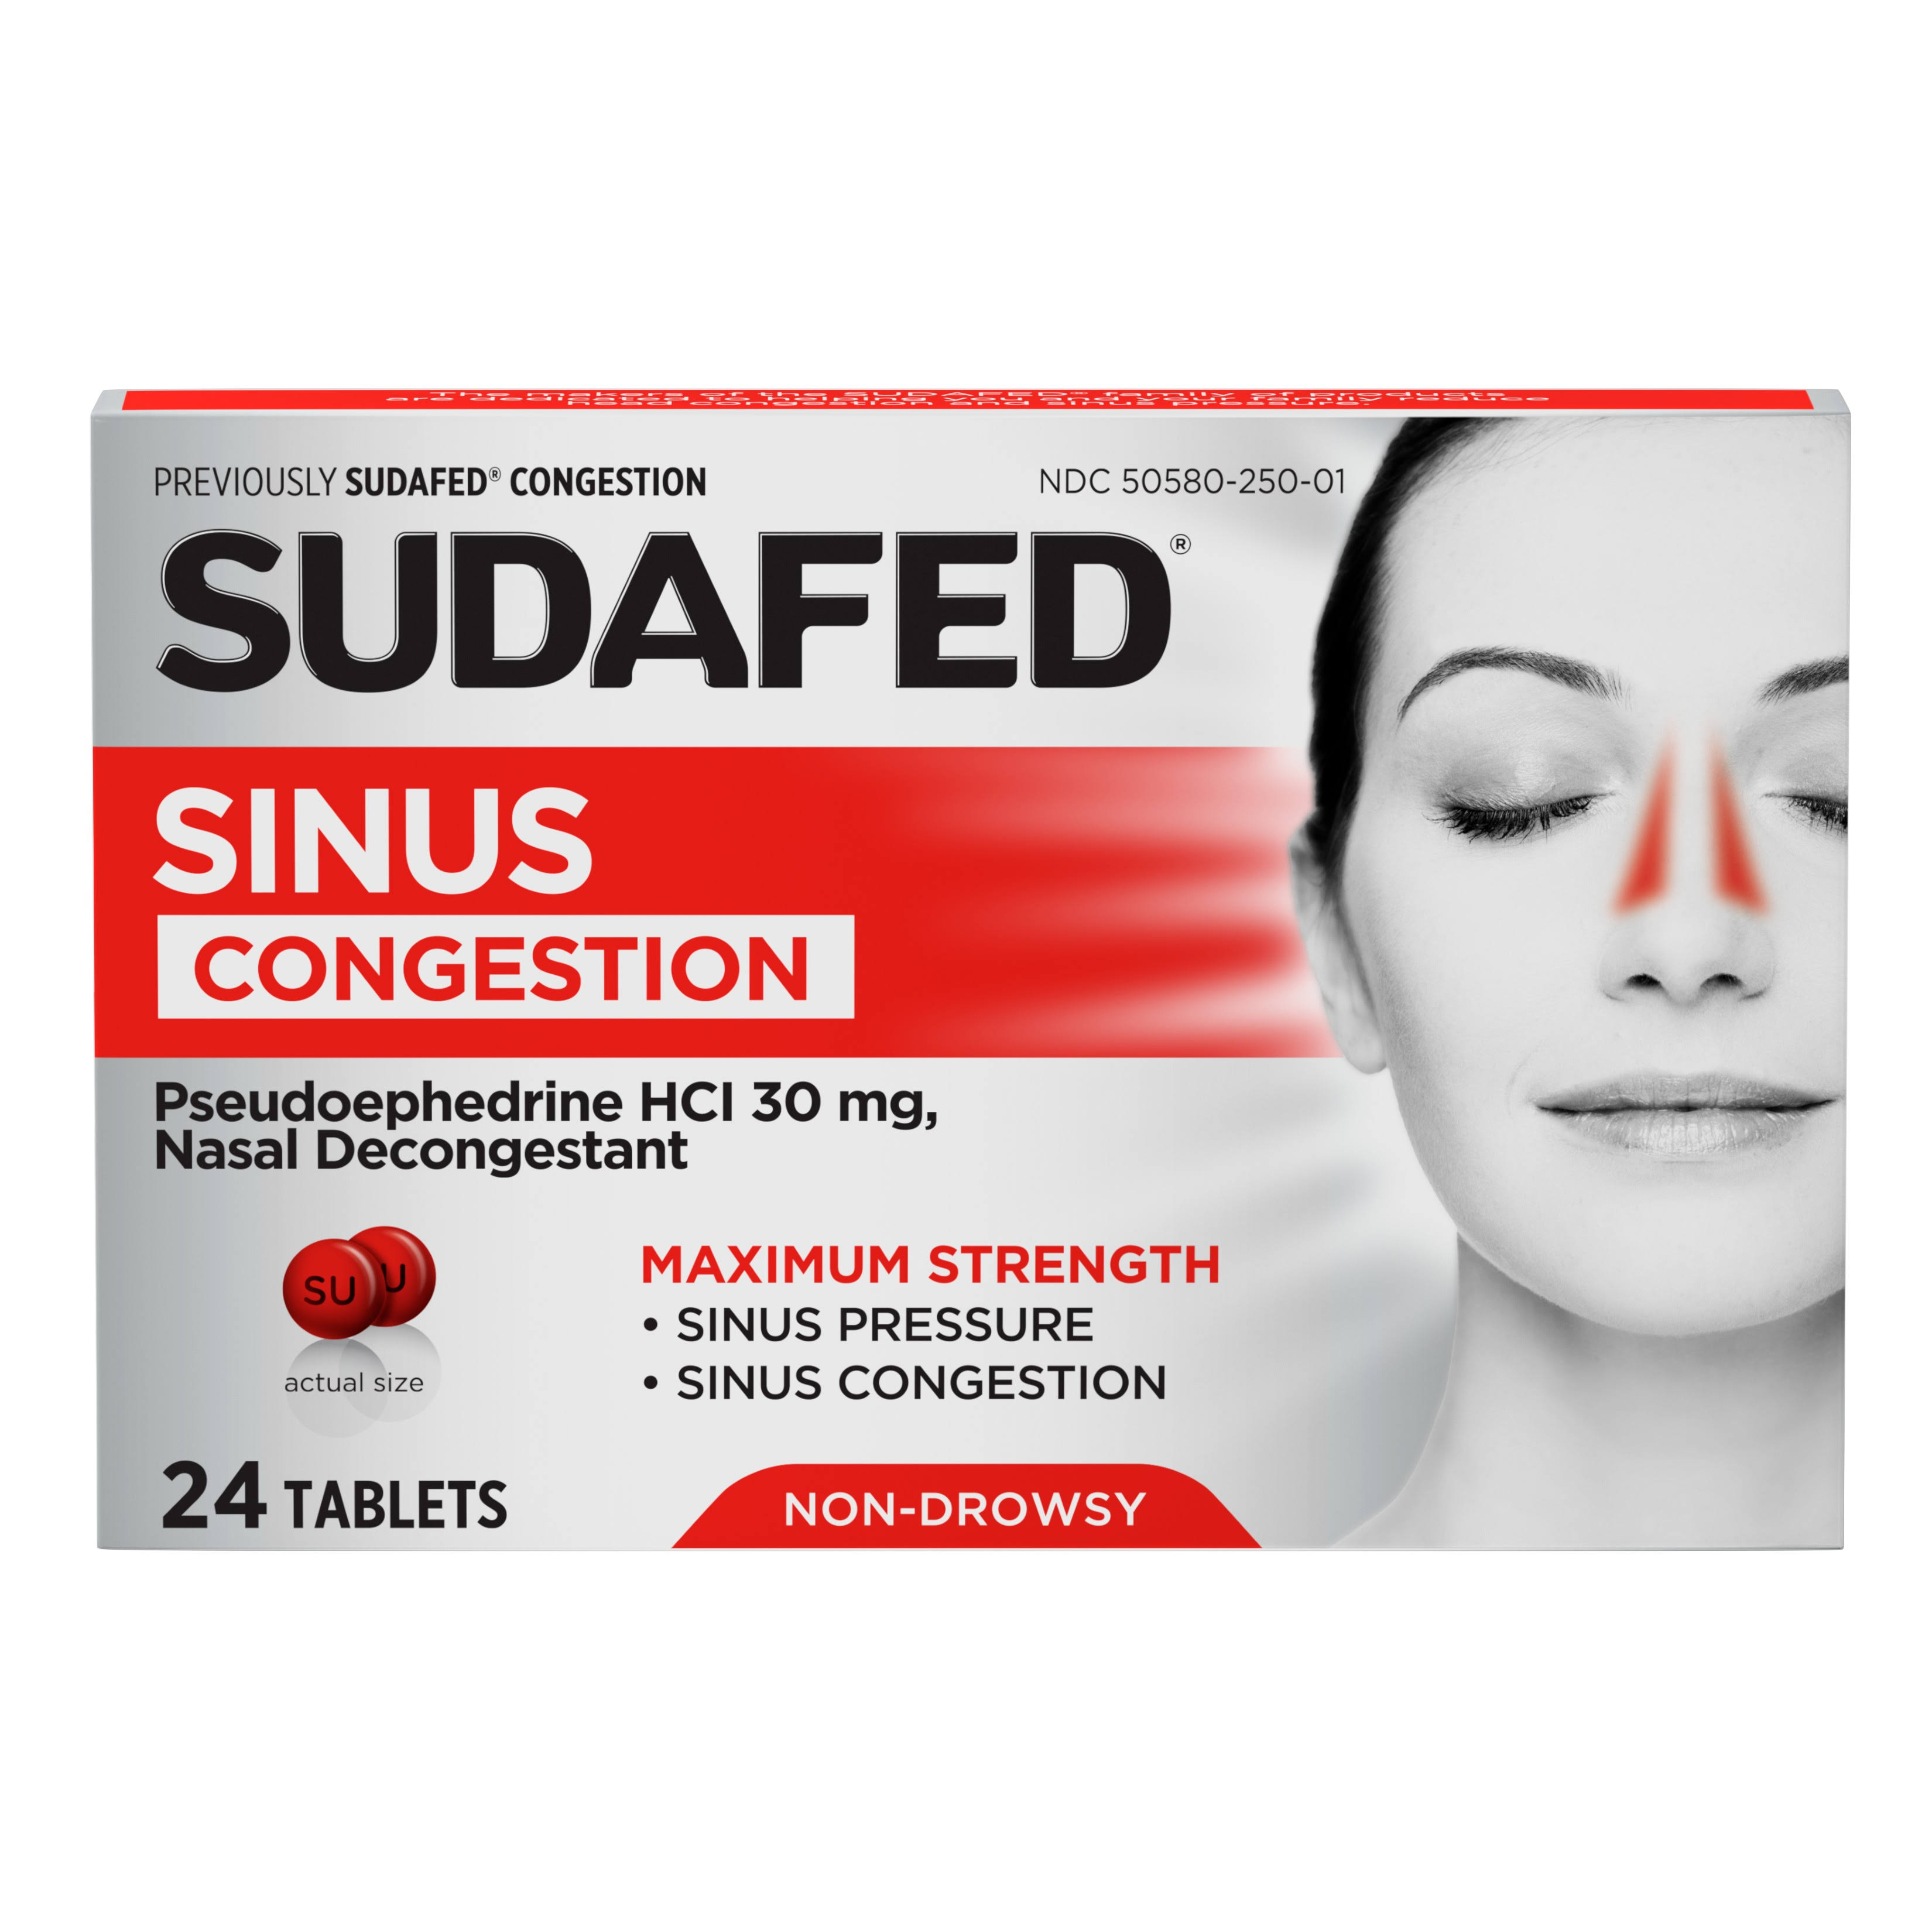 Sudafed Congestion Nasal Decongestant Tablets - 24ct, Non-Drowsy